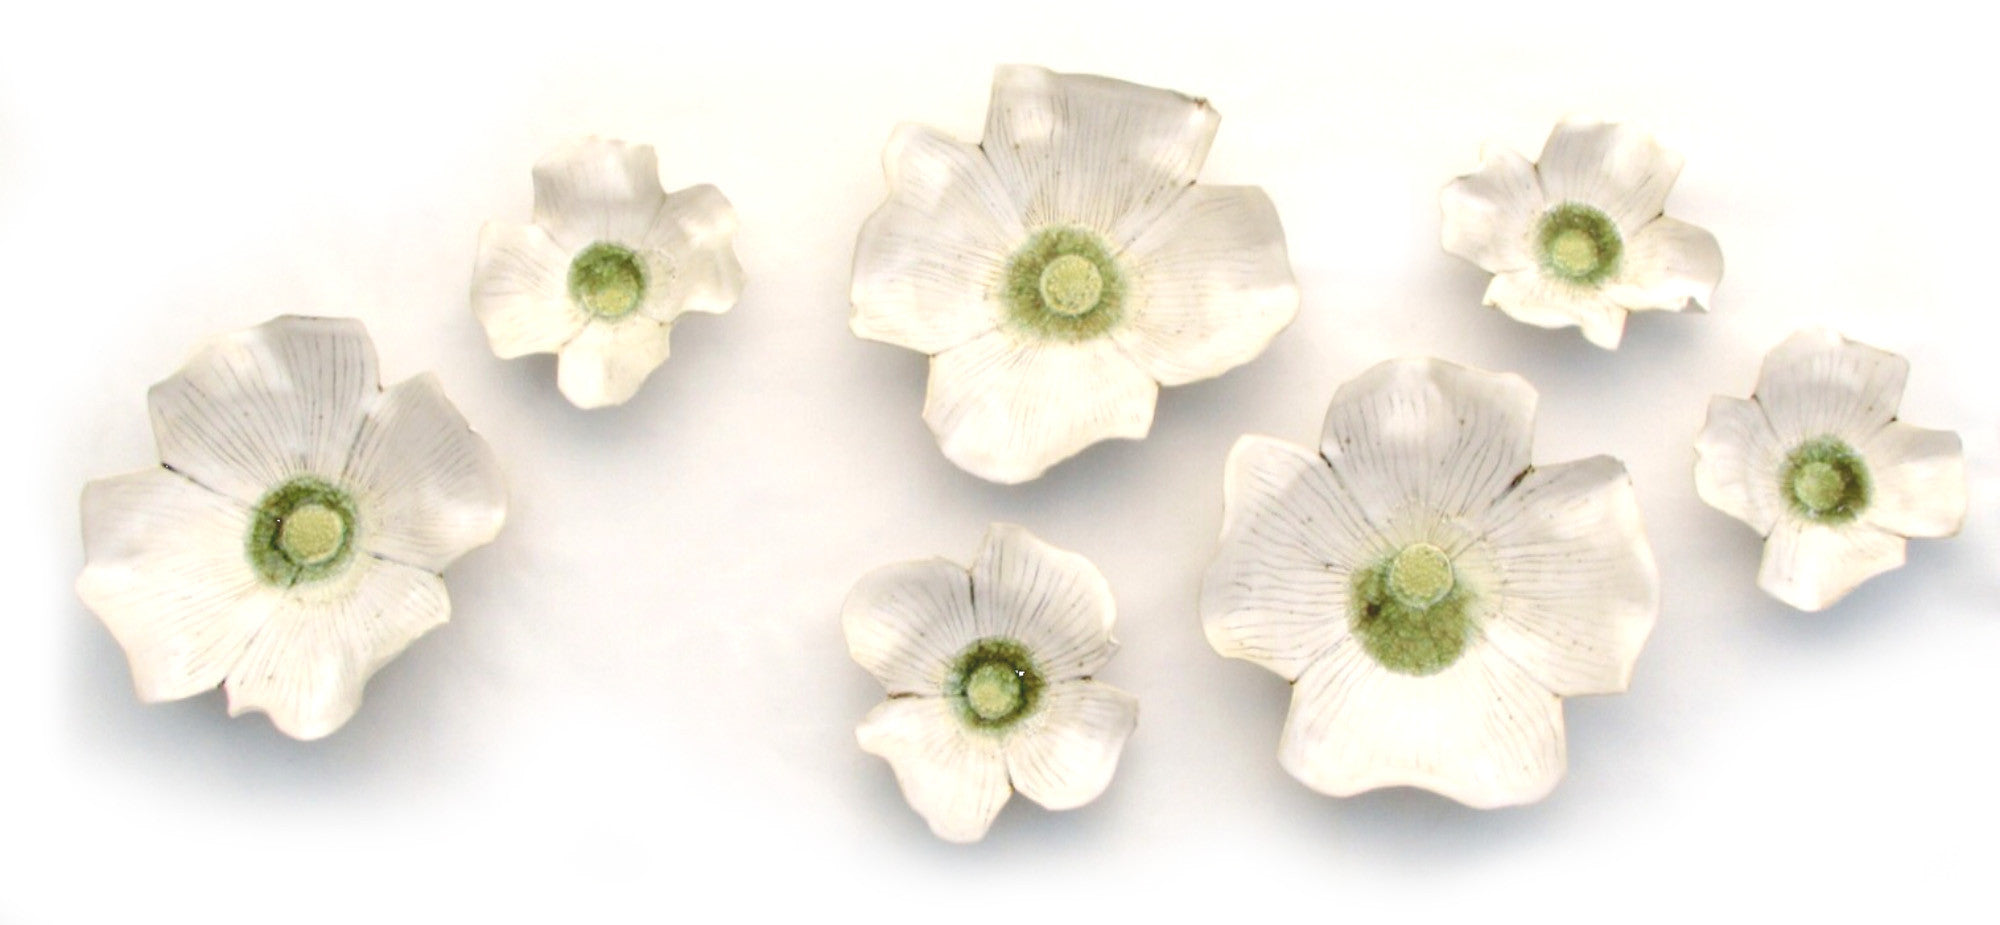 Dogwood Blossoms / 60 x 24 x 4 / porcelain ceramic wall sculptures